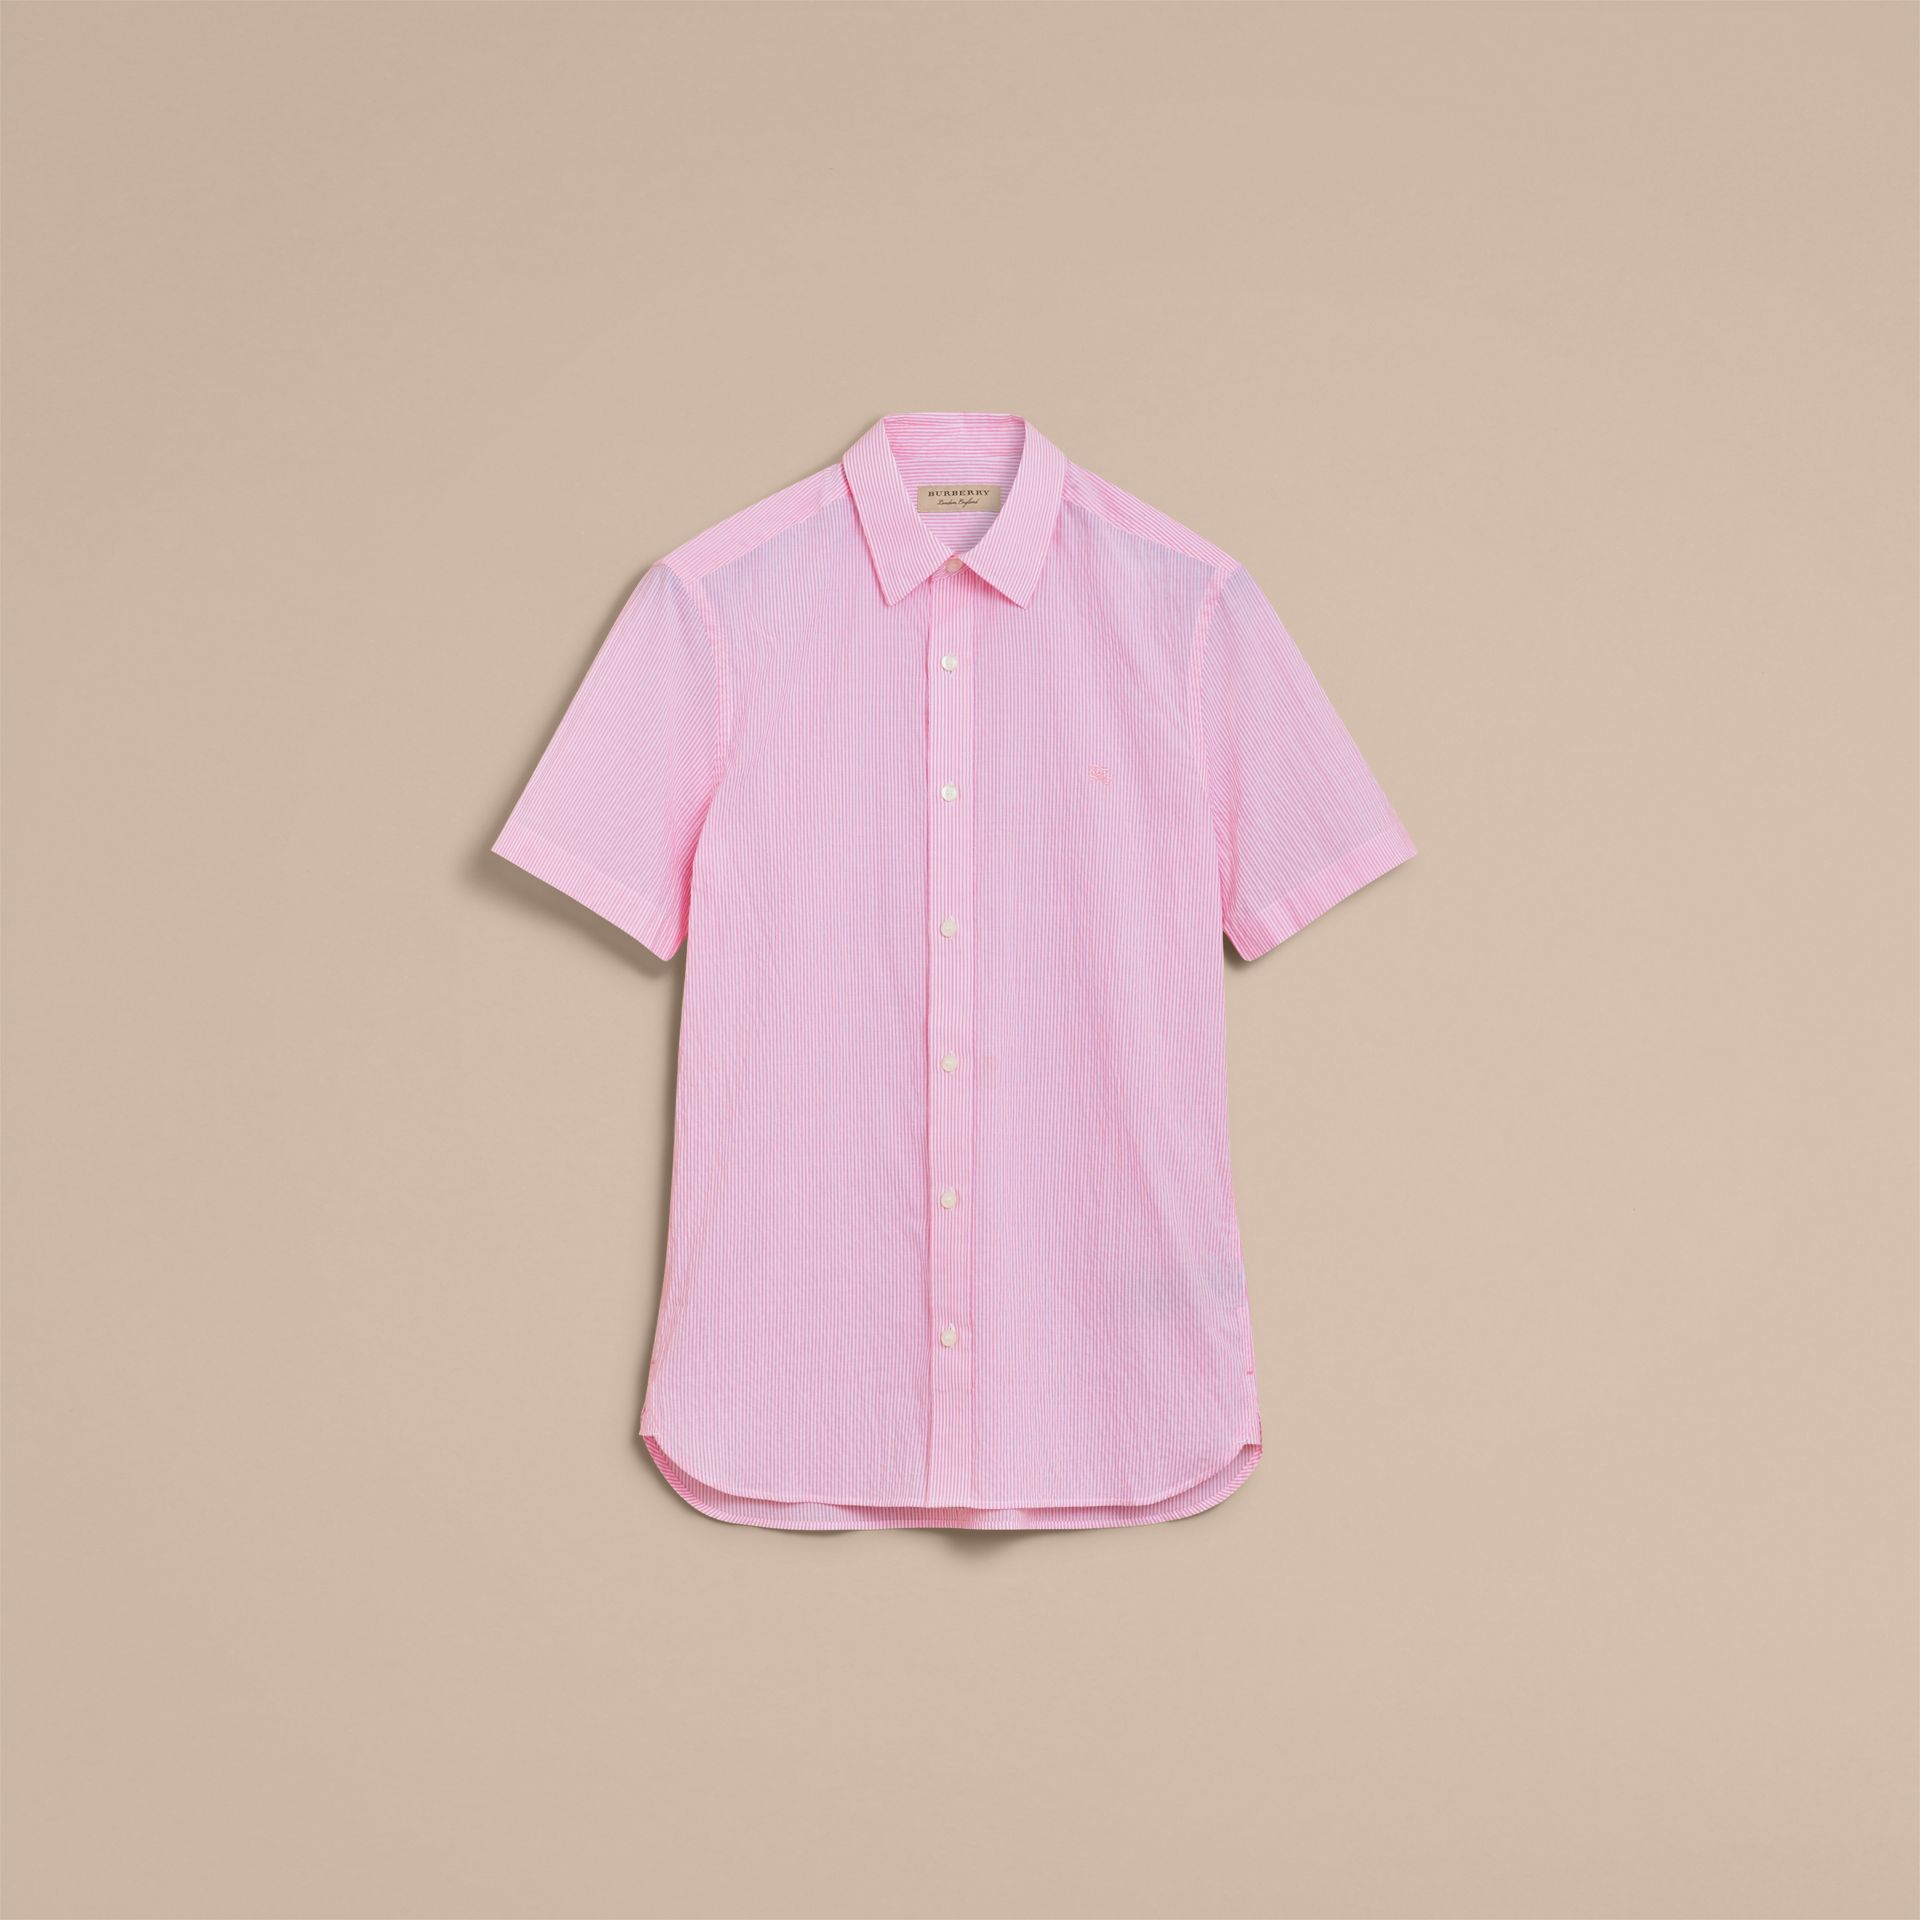 Short-sleeve Striped Cotton Seersucker Shirt in Pale Pink - Men | Burberry - gallery image 4